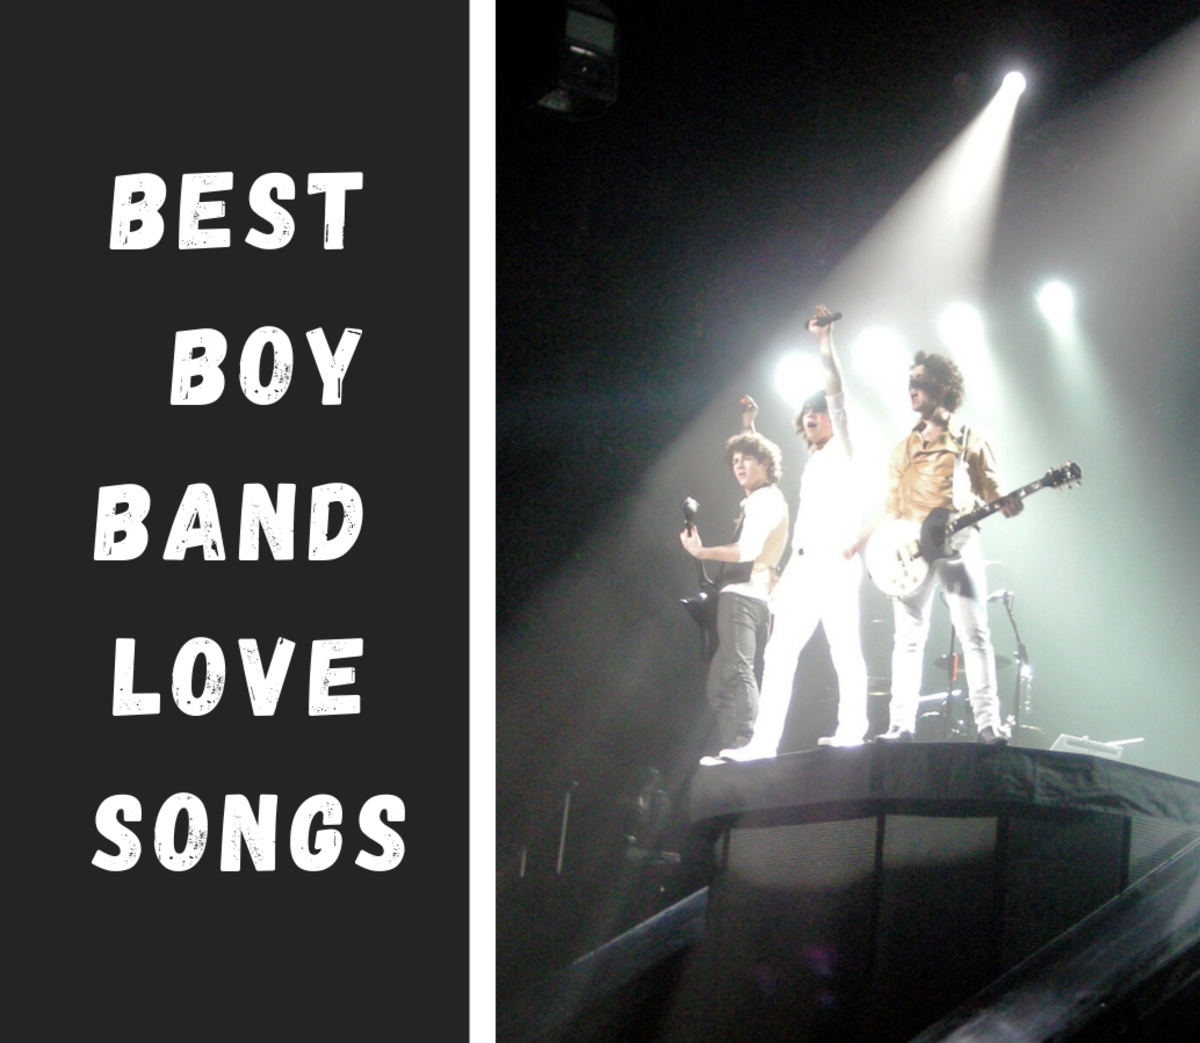 Jonas Brothers are described as a pop boy band.